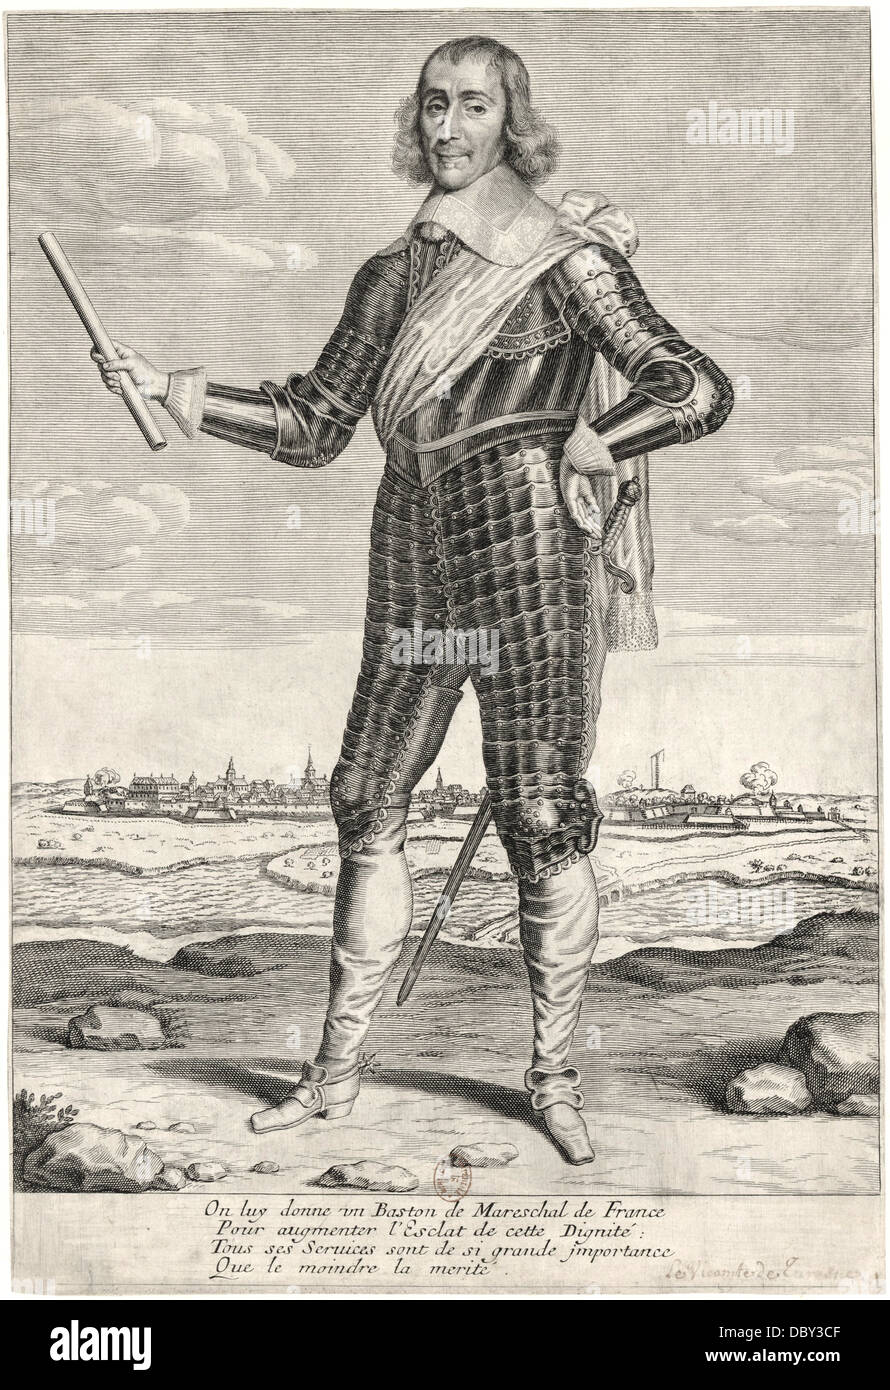 Abraham de Fabert (1599 - 1662), marshal of France. - Stock Image